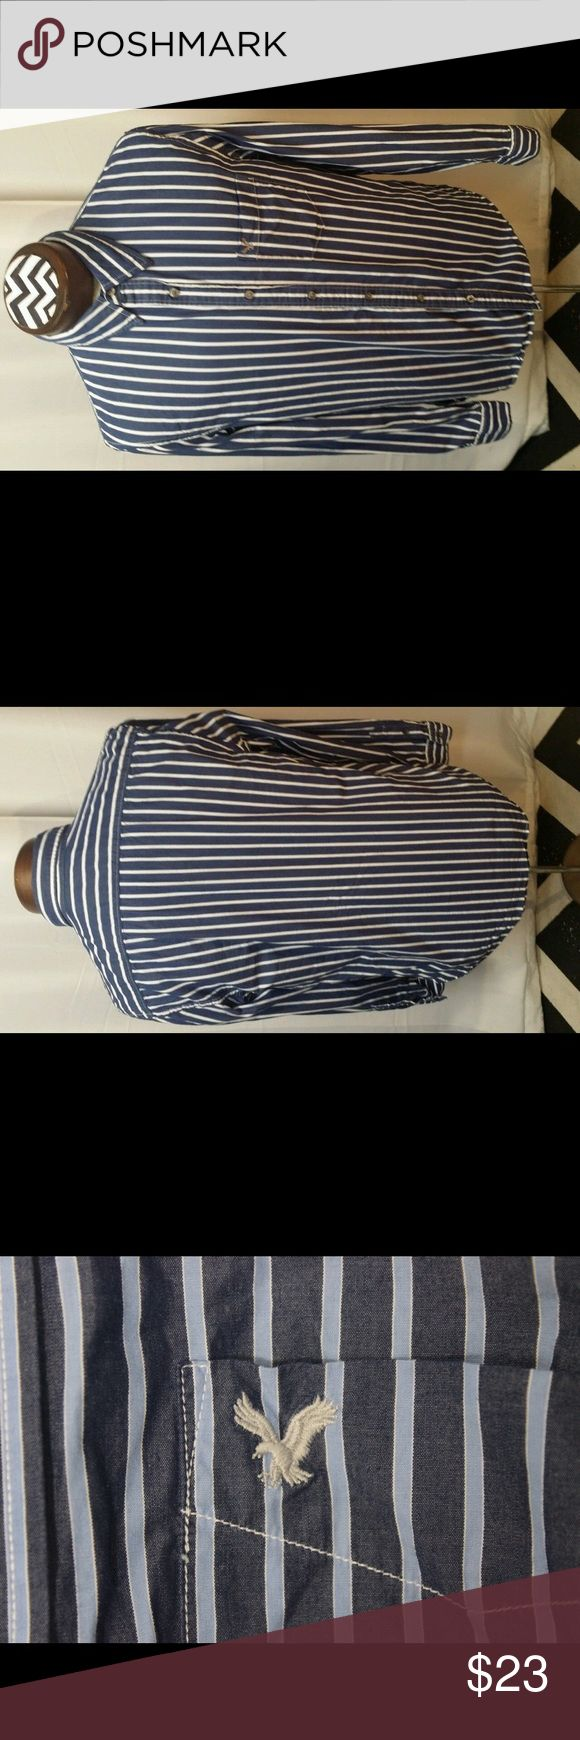 American eagle vintage fit stripe dark blue white You Are Buying American eagle vintage fit stripe dark blue white  It is in great pre-own Condition.  Fast shipping in the USA via USPS.  FEEDBACK: we strive to earn positive 5 star feedback for all items. And we will leave the same for all good buyers.  If you feel we deserve anything less please send us a message before leaving anything less or opening a case and we will fix the issue within 24 hours.   Thank you!!! American Eagle Outfitters…